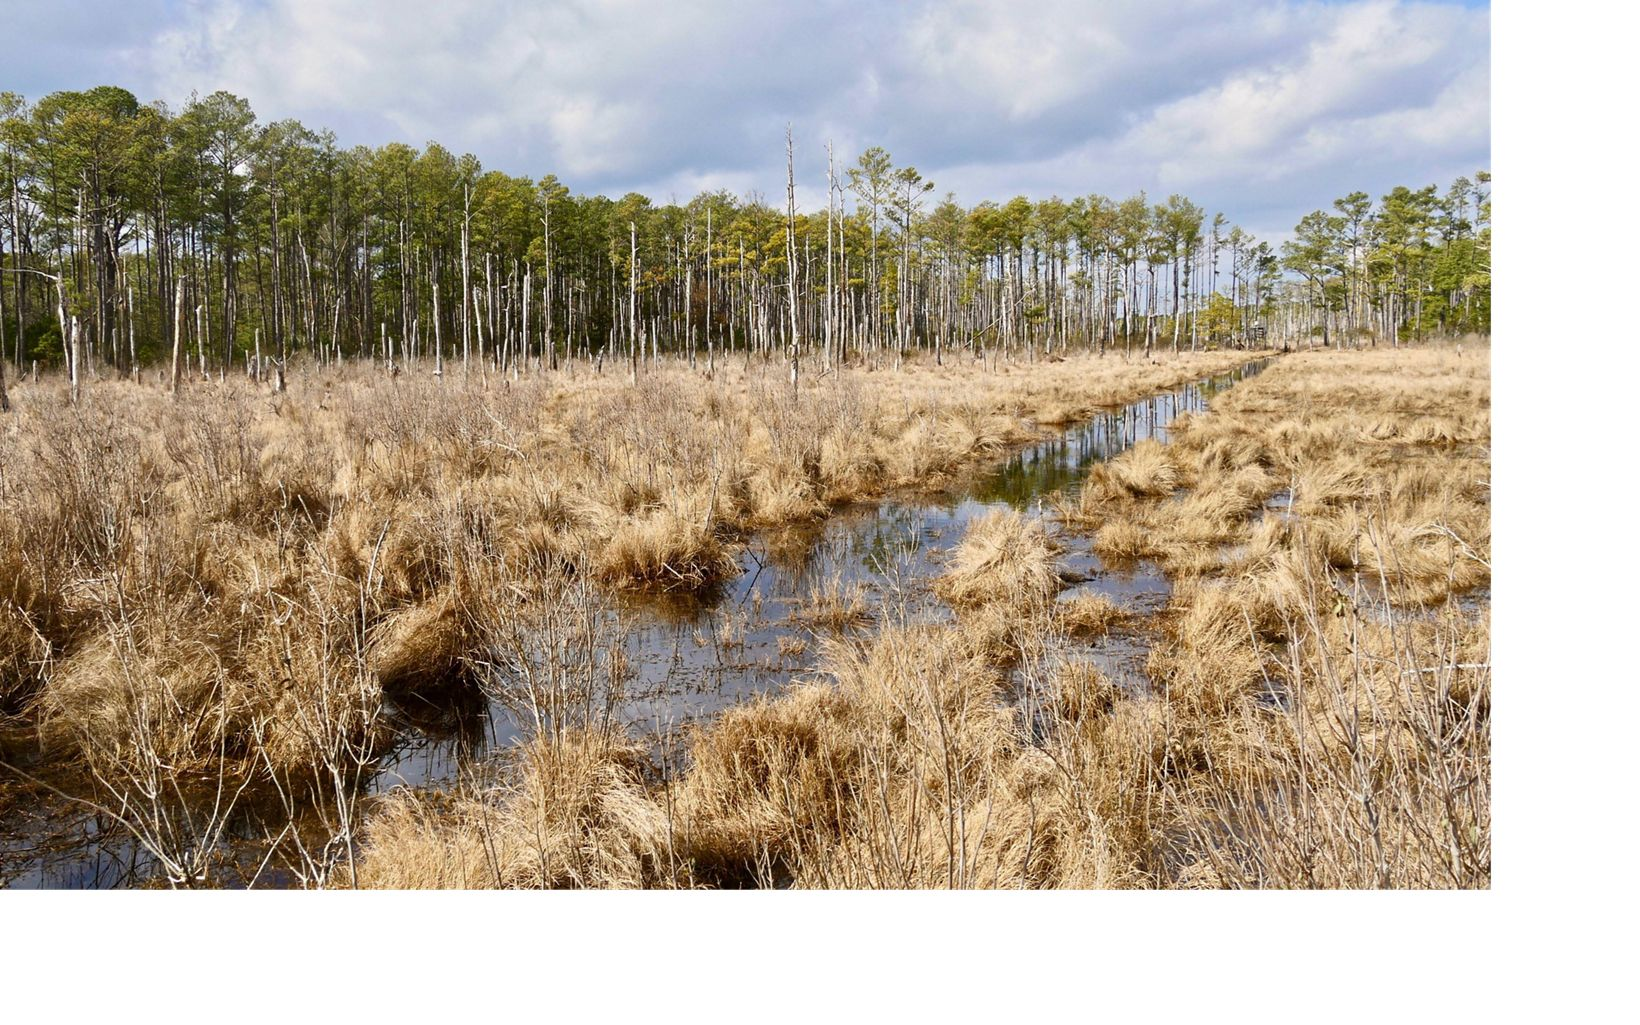 Located on on Maryland's Eastern Shore, Robinson Neck Preserve is largely comprised of brackish tidal marsh and provides a haven for many bird species.